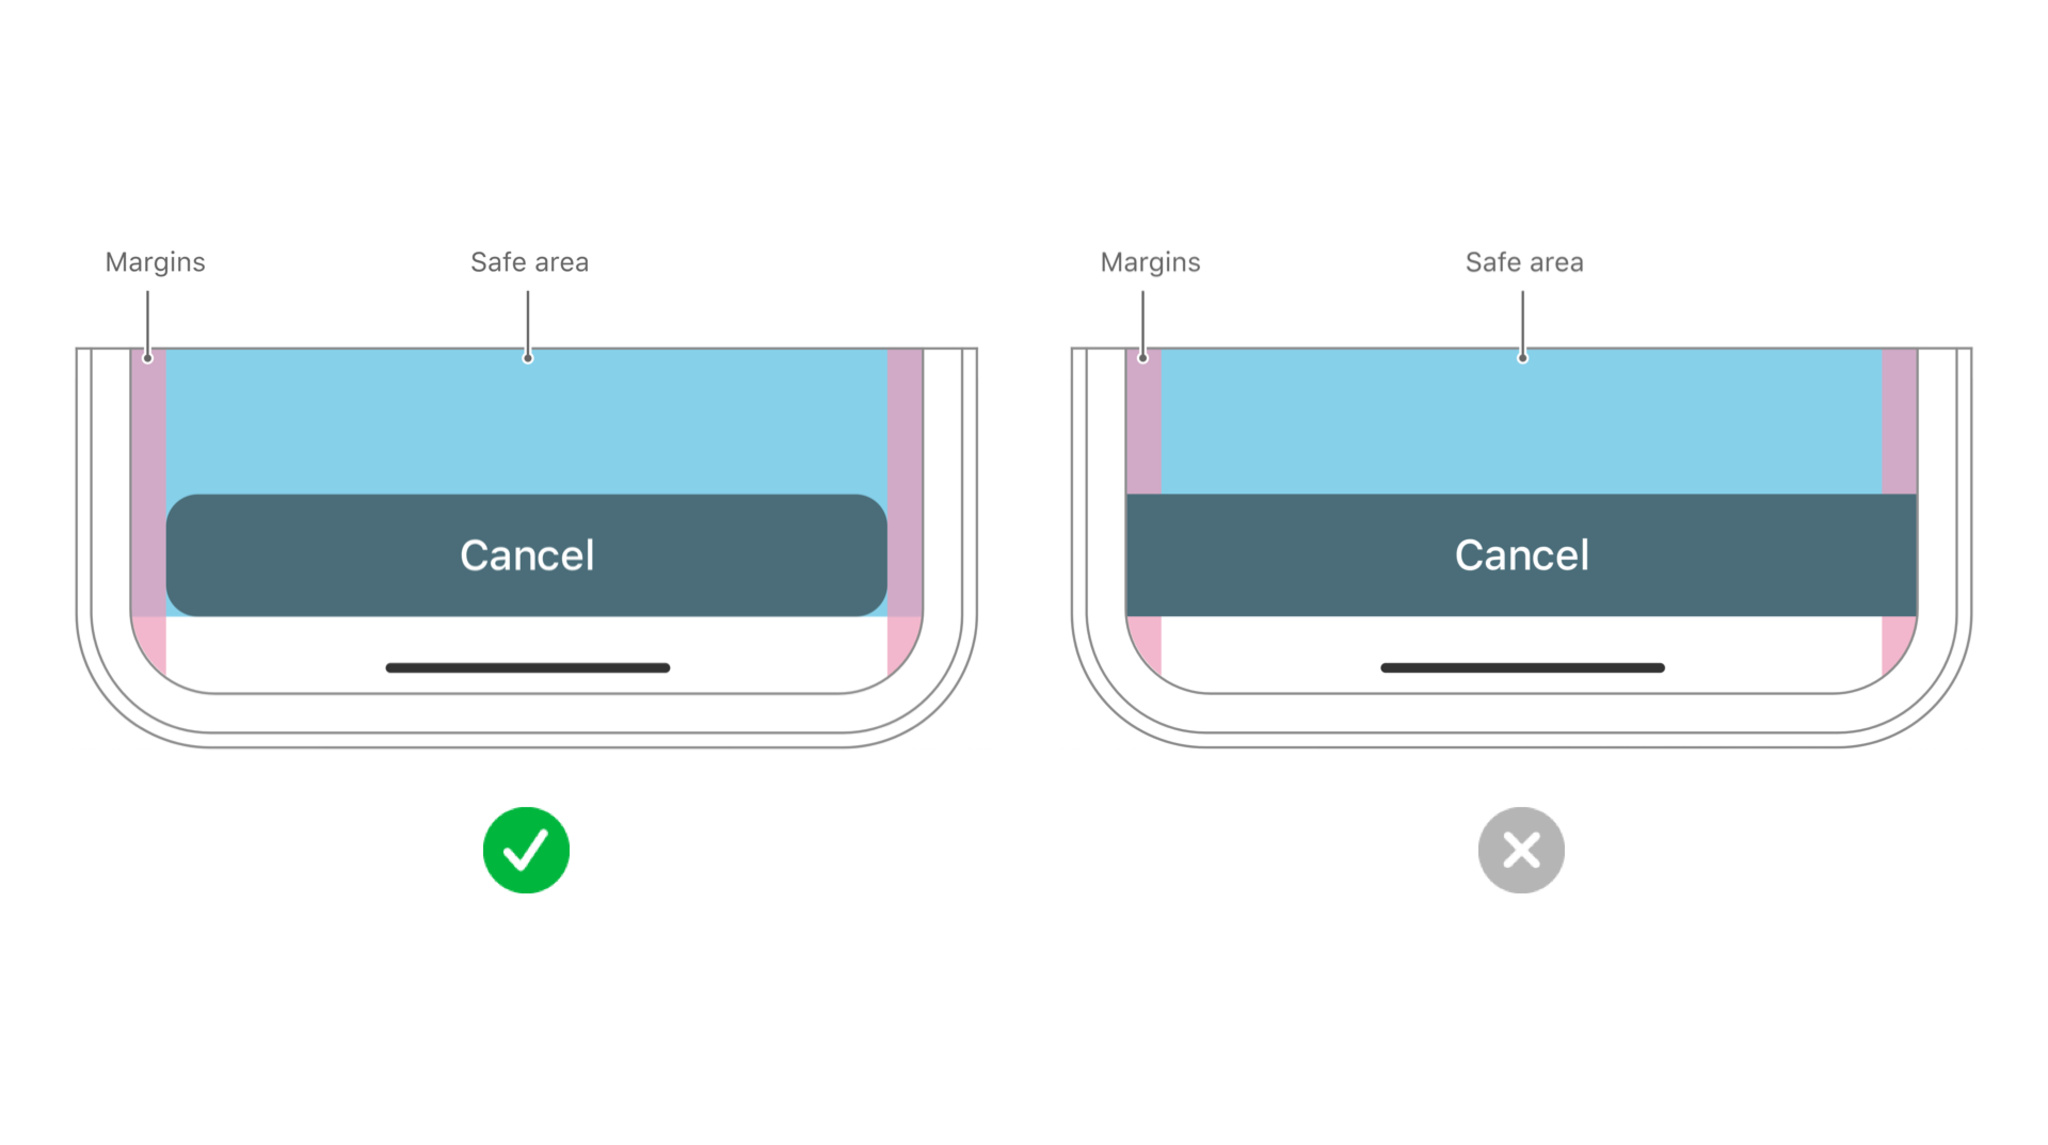 Displaying the difference between an iPhone screen that provides safe areas, margins, and a rounded button versus one with a flat button that goes beyond the safe areas and margins